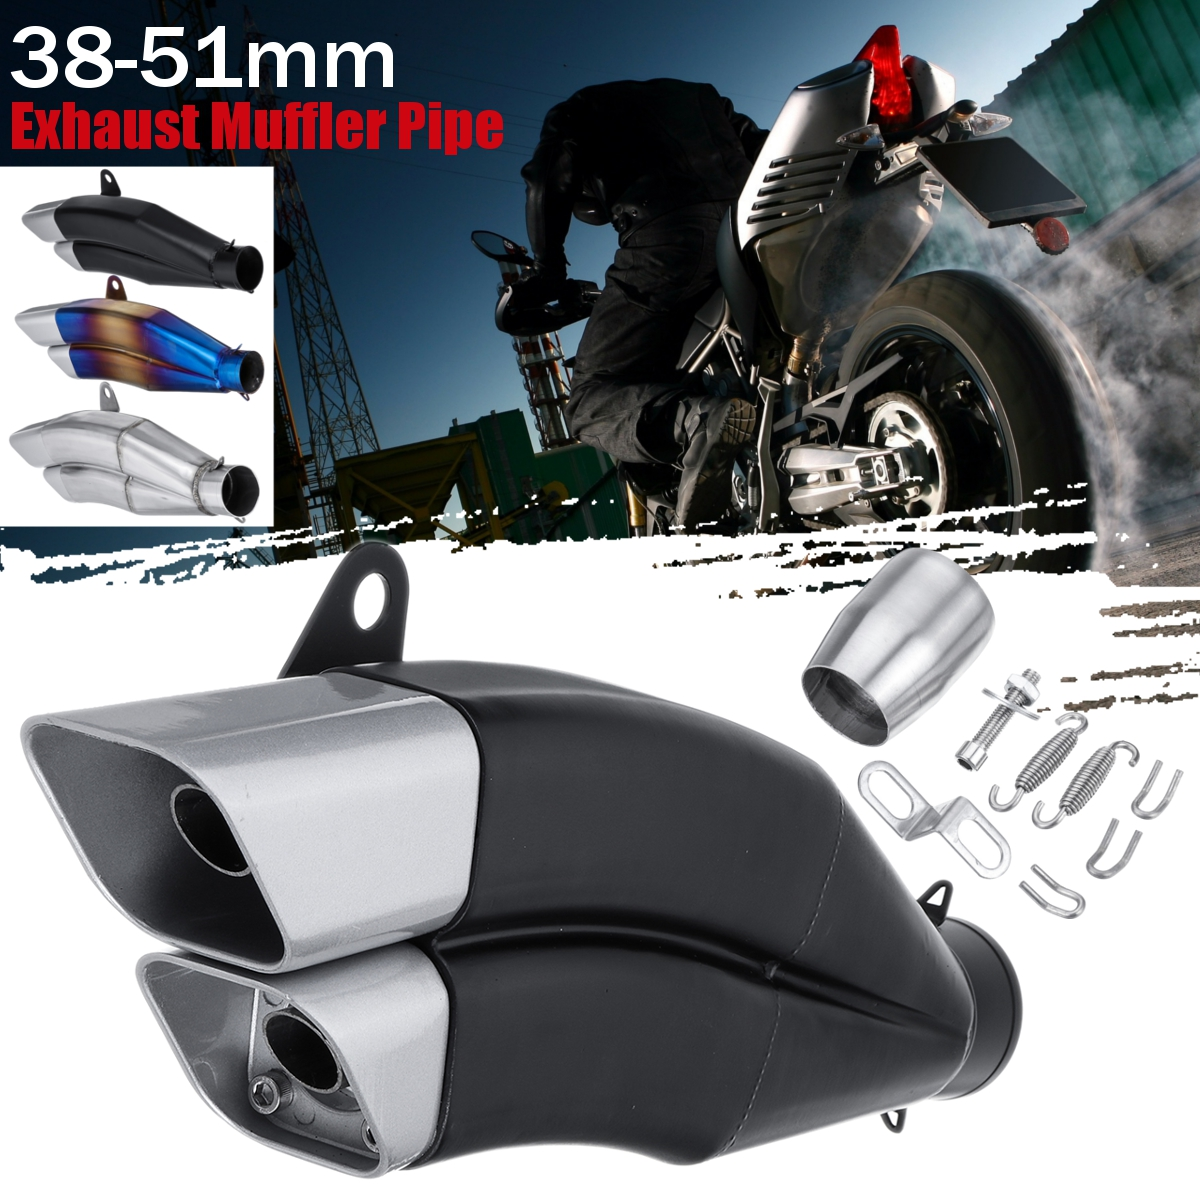 Motorcycle Exhaust Pipe Universal Motorcycle Racing Outlet Muffler Modified Retro Tail Exhaust Pipe